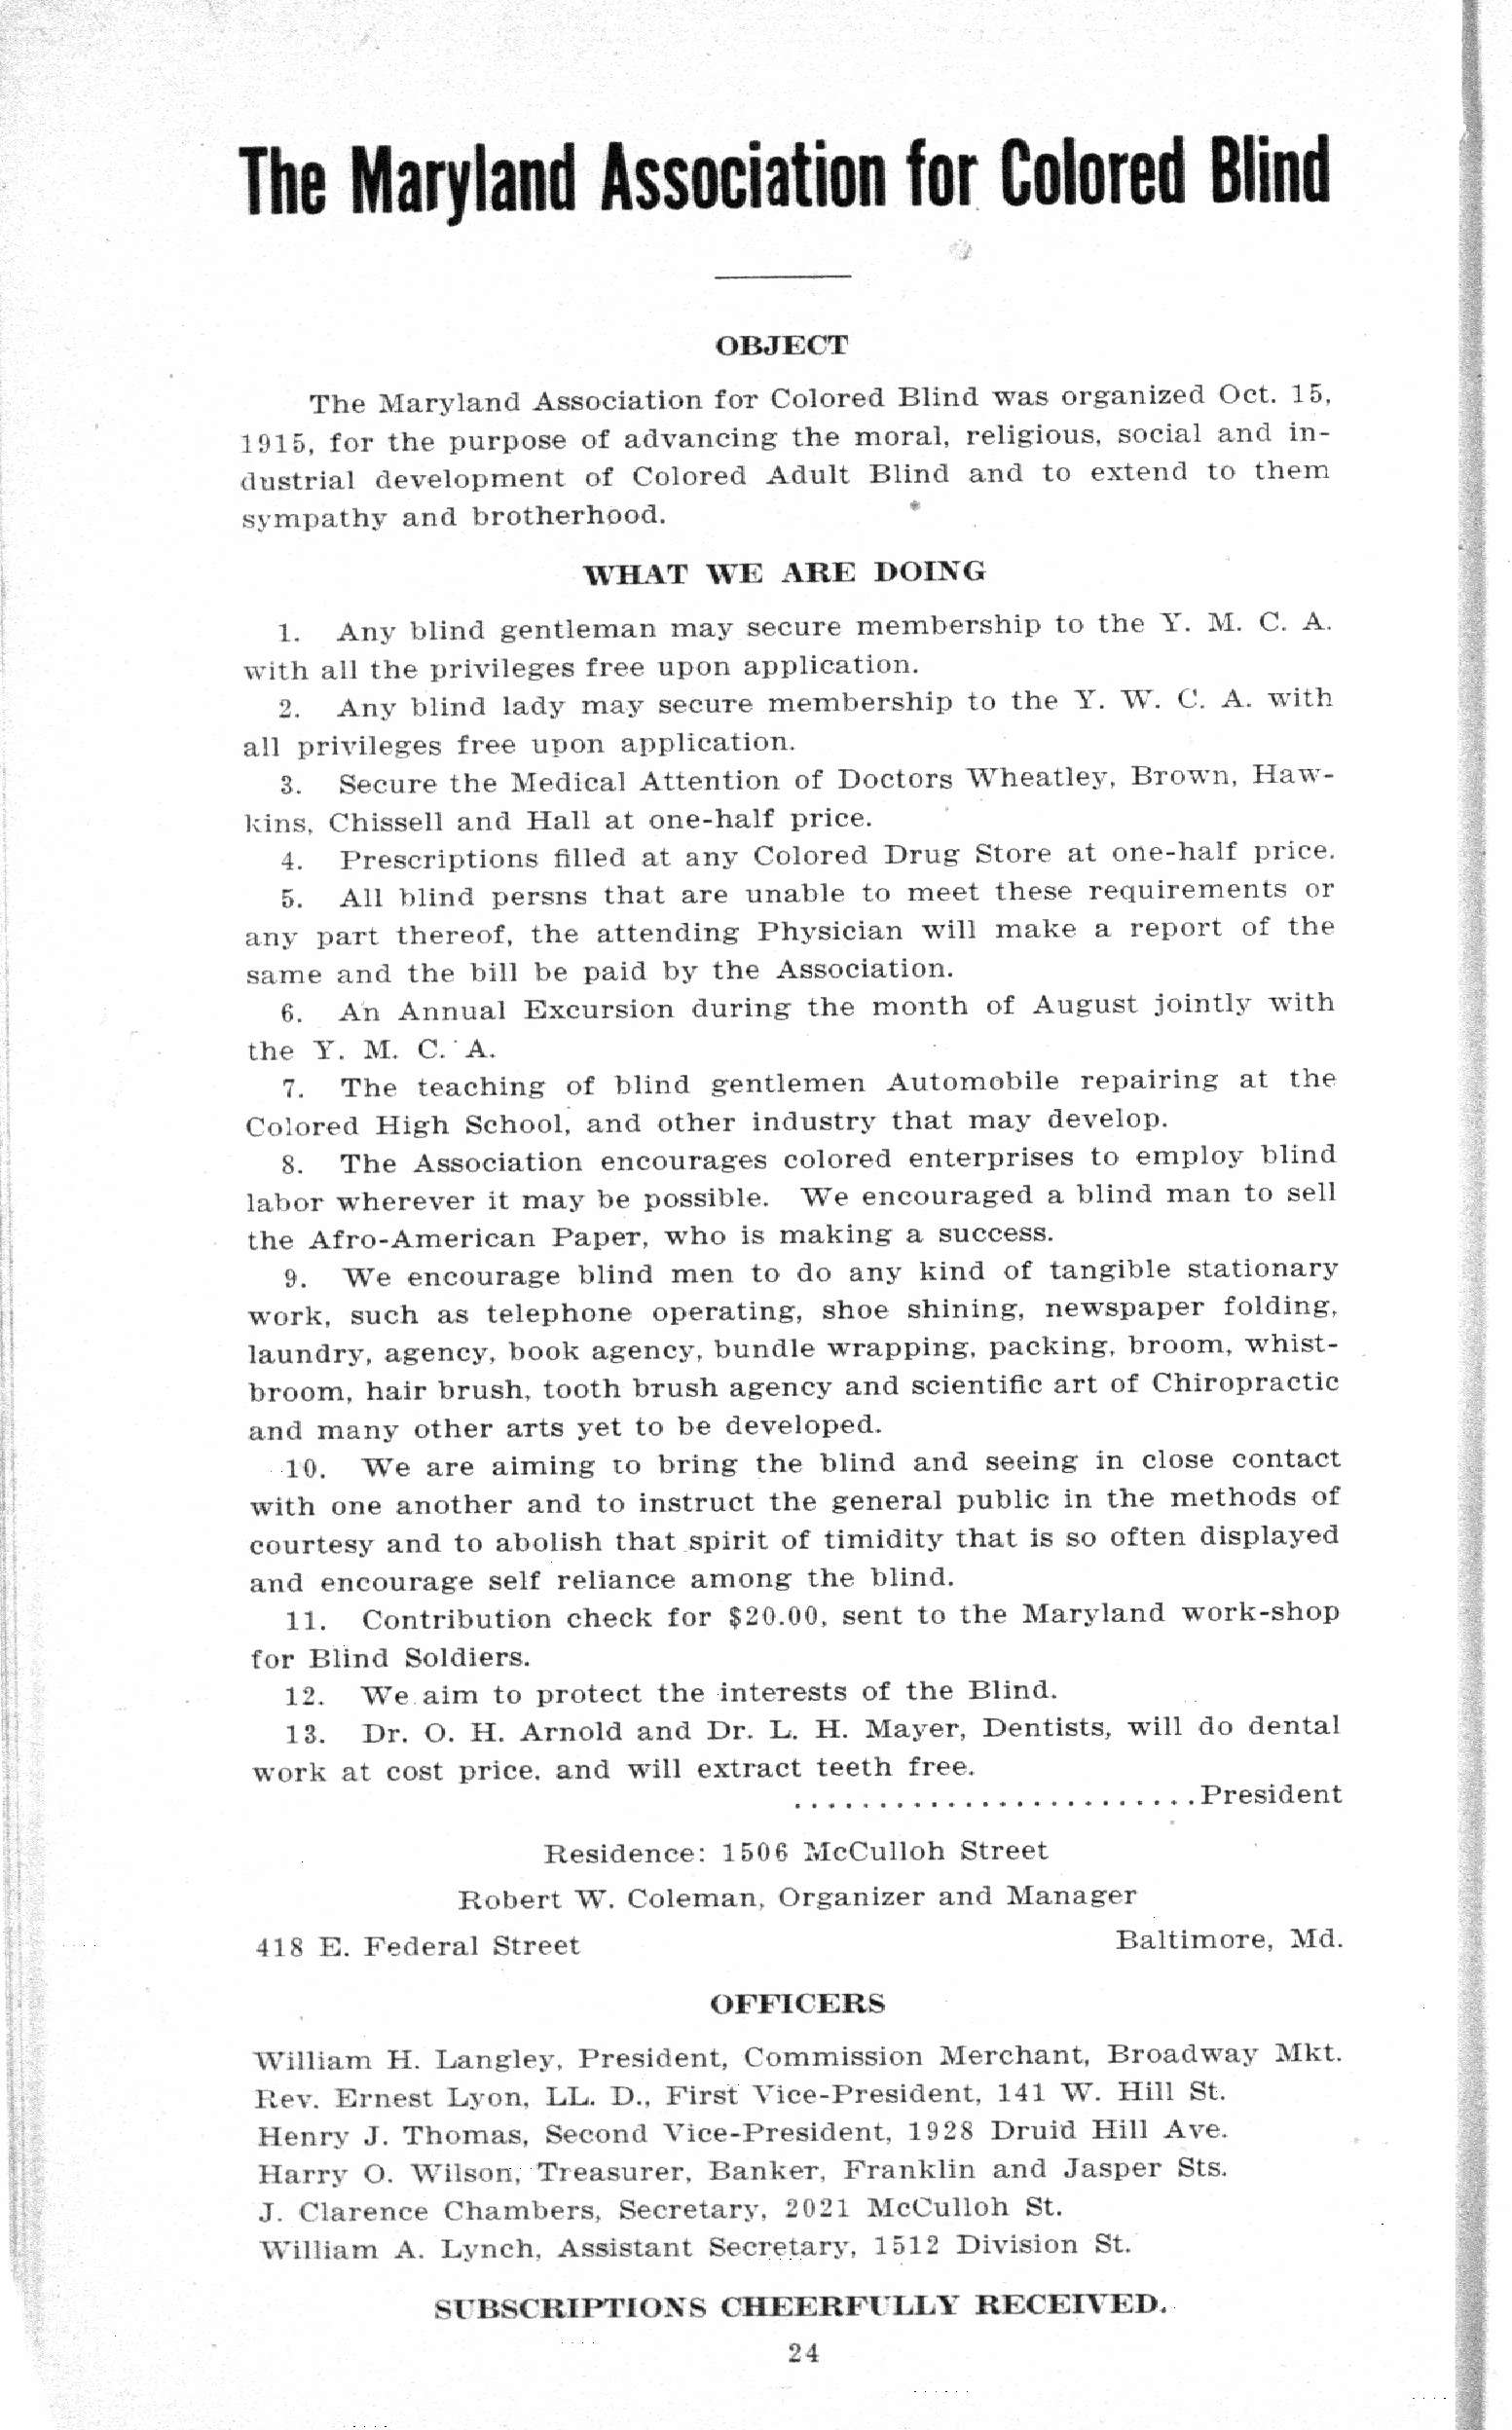 Advertisement, Maryland Association for Colored Blind. Seventh Edition, 1919-1920 The First Colored Professional, Clerical, Skilled and Business Directory of Baltimore City with Washington, D.C. and Annapolis Annex. Baltimore, MD: Robert W. Coleman, Publishing Co. Morgan State University